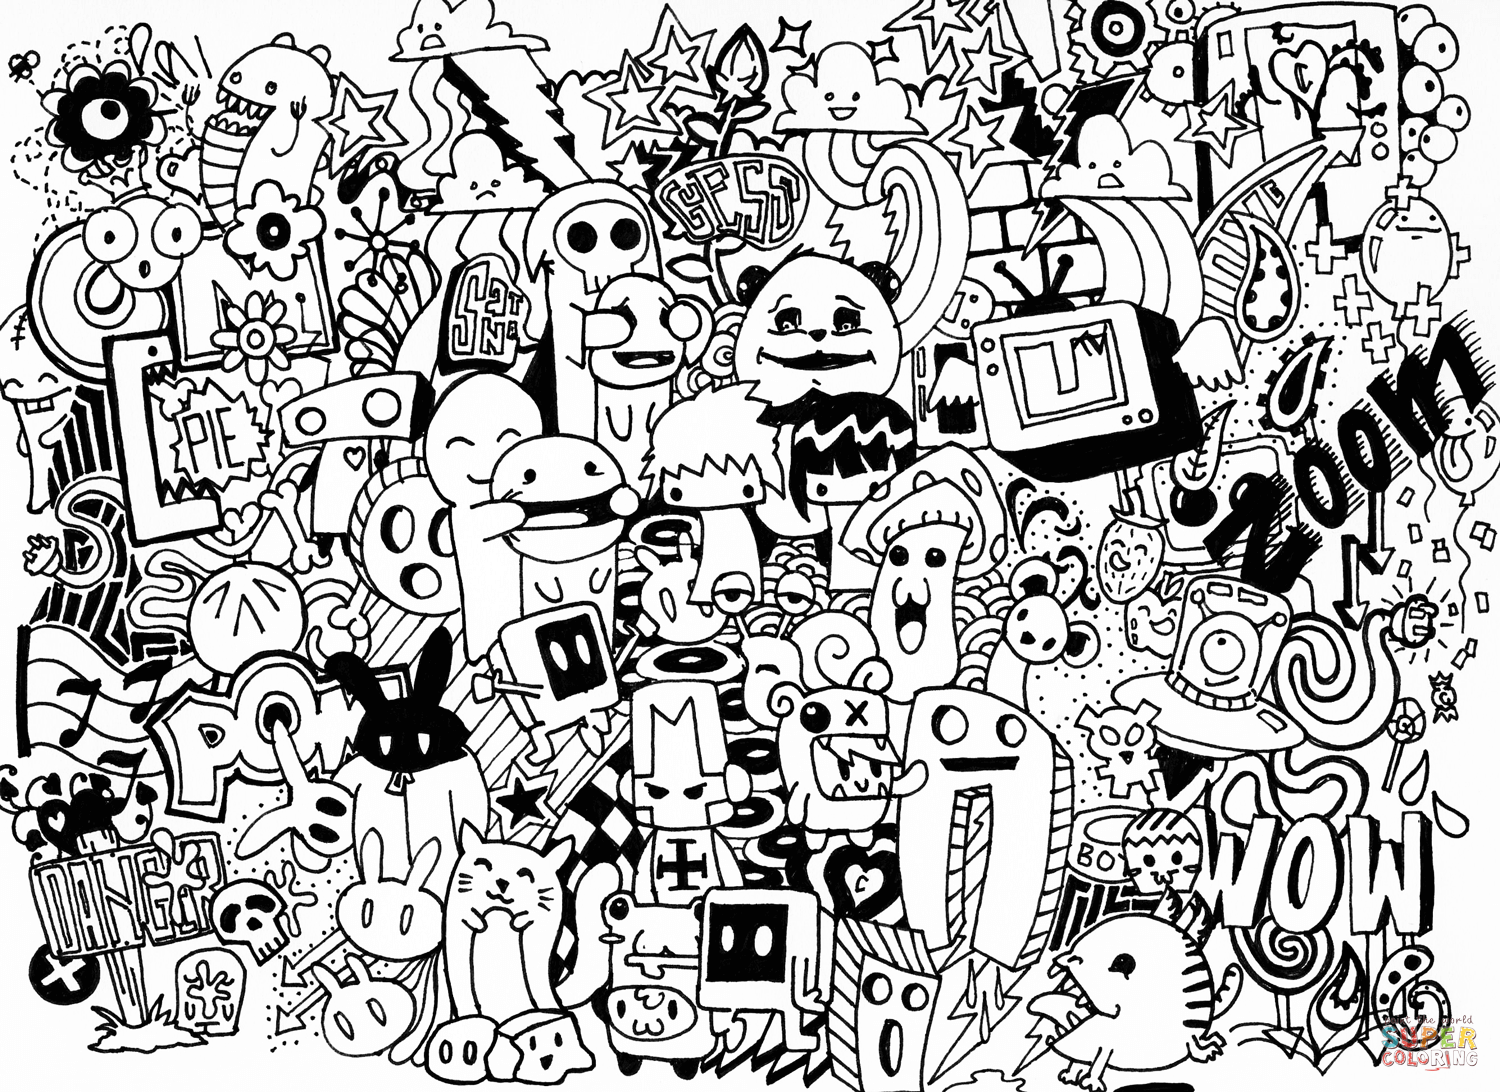 Doodle Art Alley Quotes Coloring Pages Doodle Art Christmas Color Pages